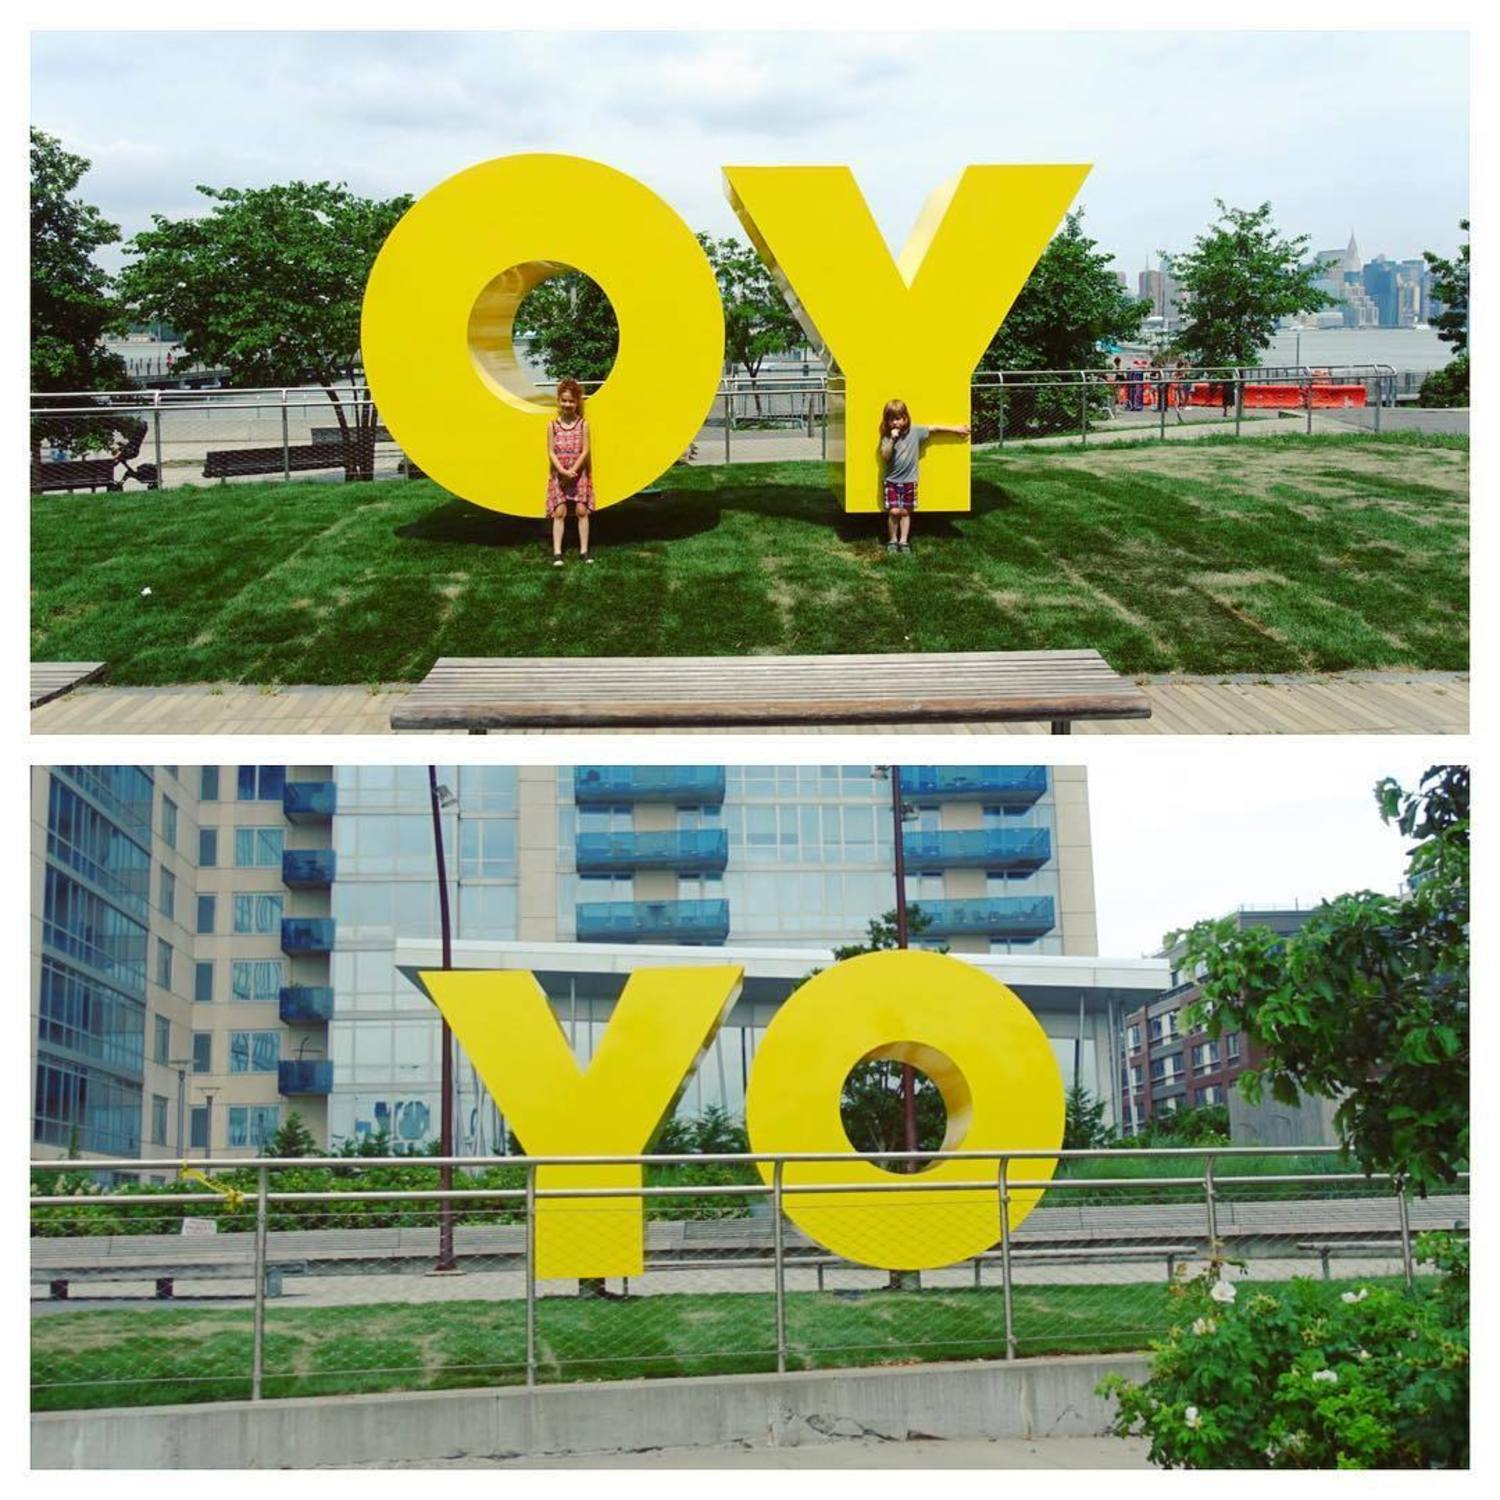 #oy #yo #williamsburg #deborahkass @debkass #williamsburgwaterfront #ferry #nyc #publicart #yellow #instakids